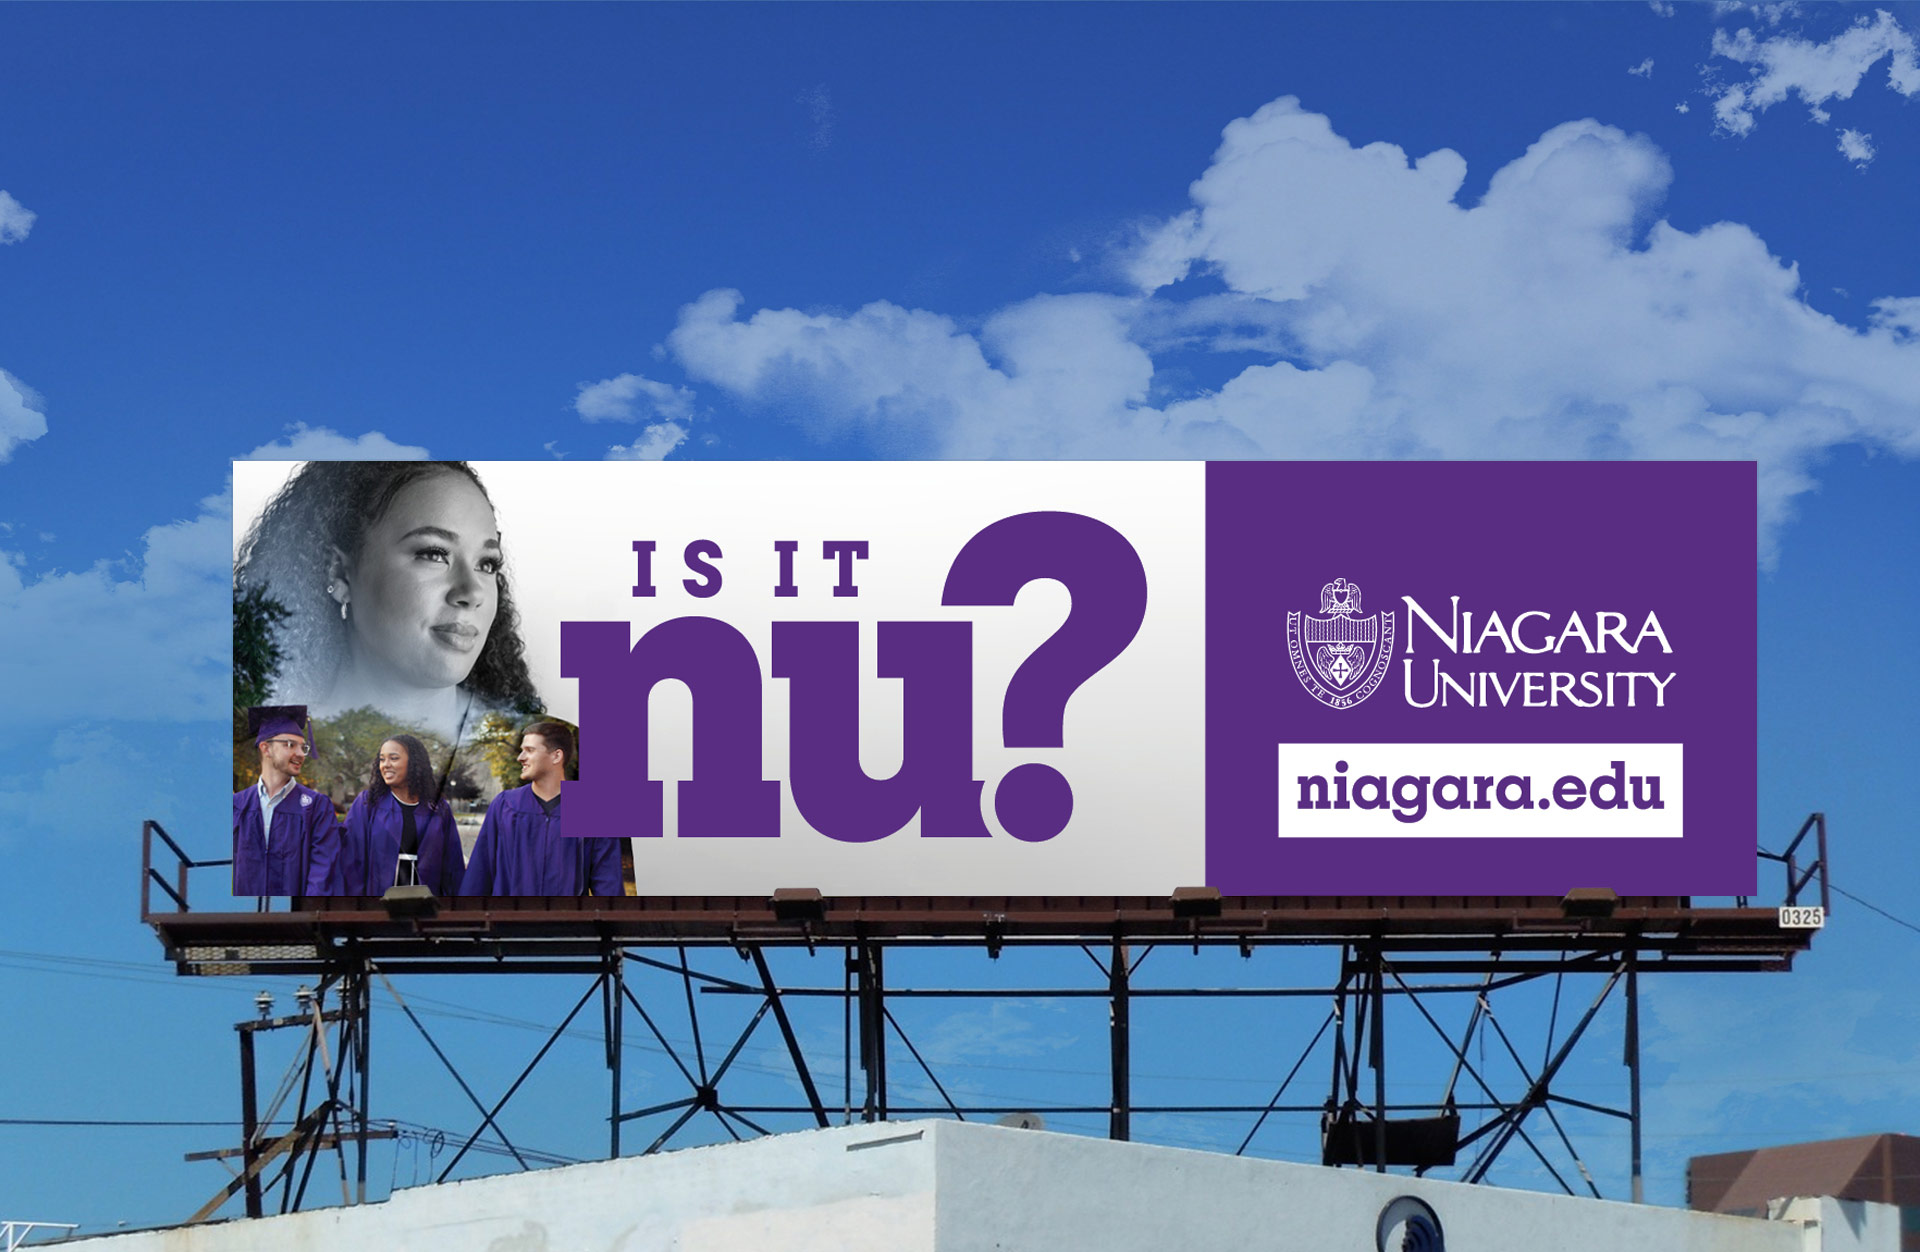 is it NU? billboard